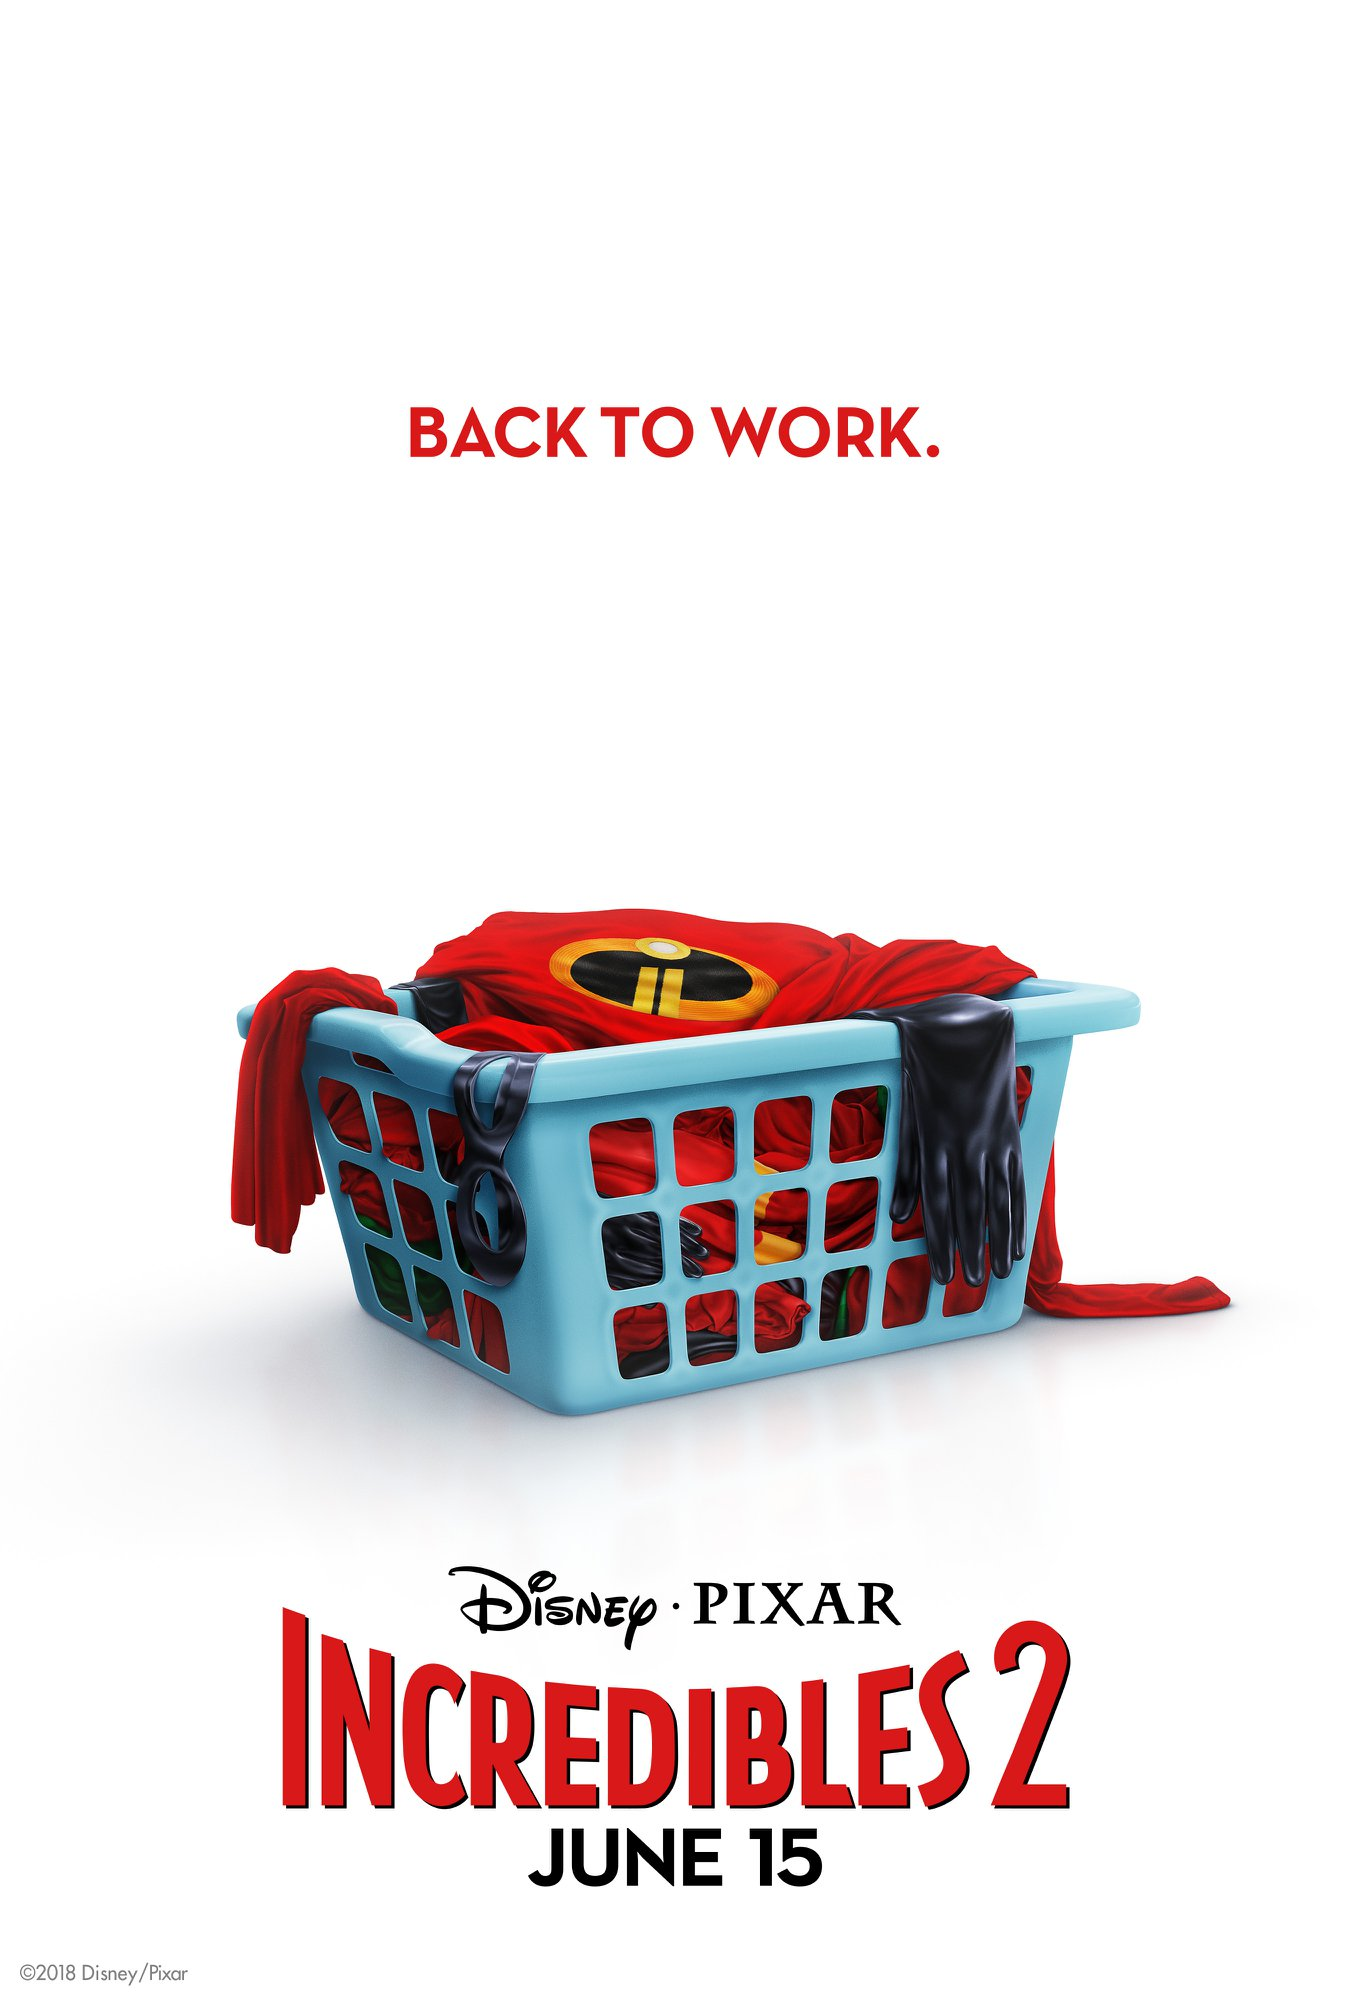 Incredibles 2 Pixar Film